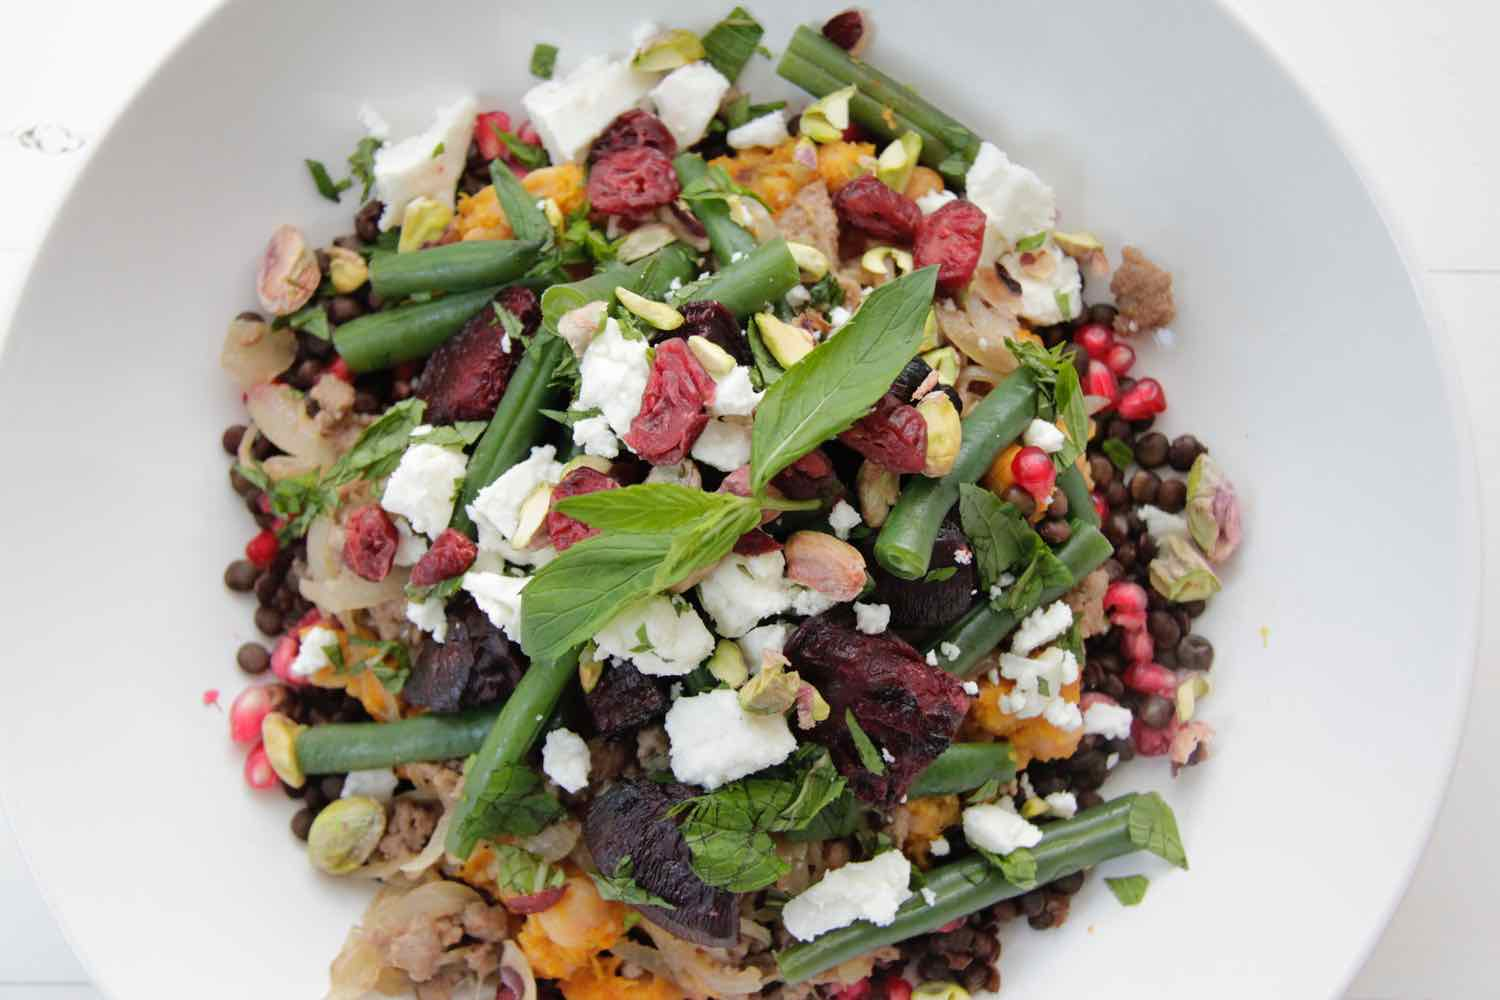 Favourite warm salad of the year